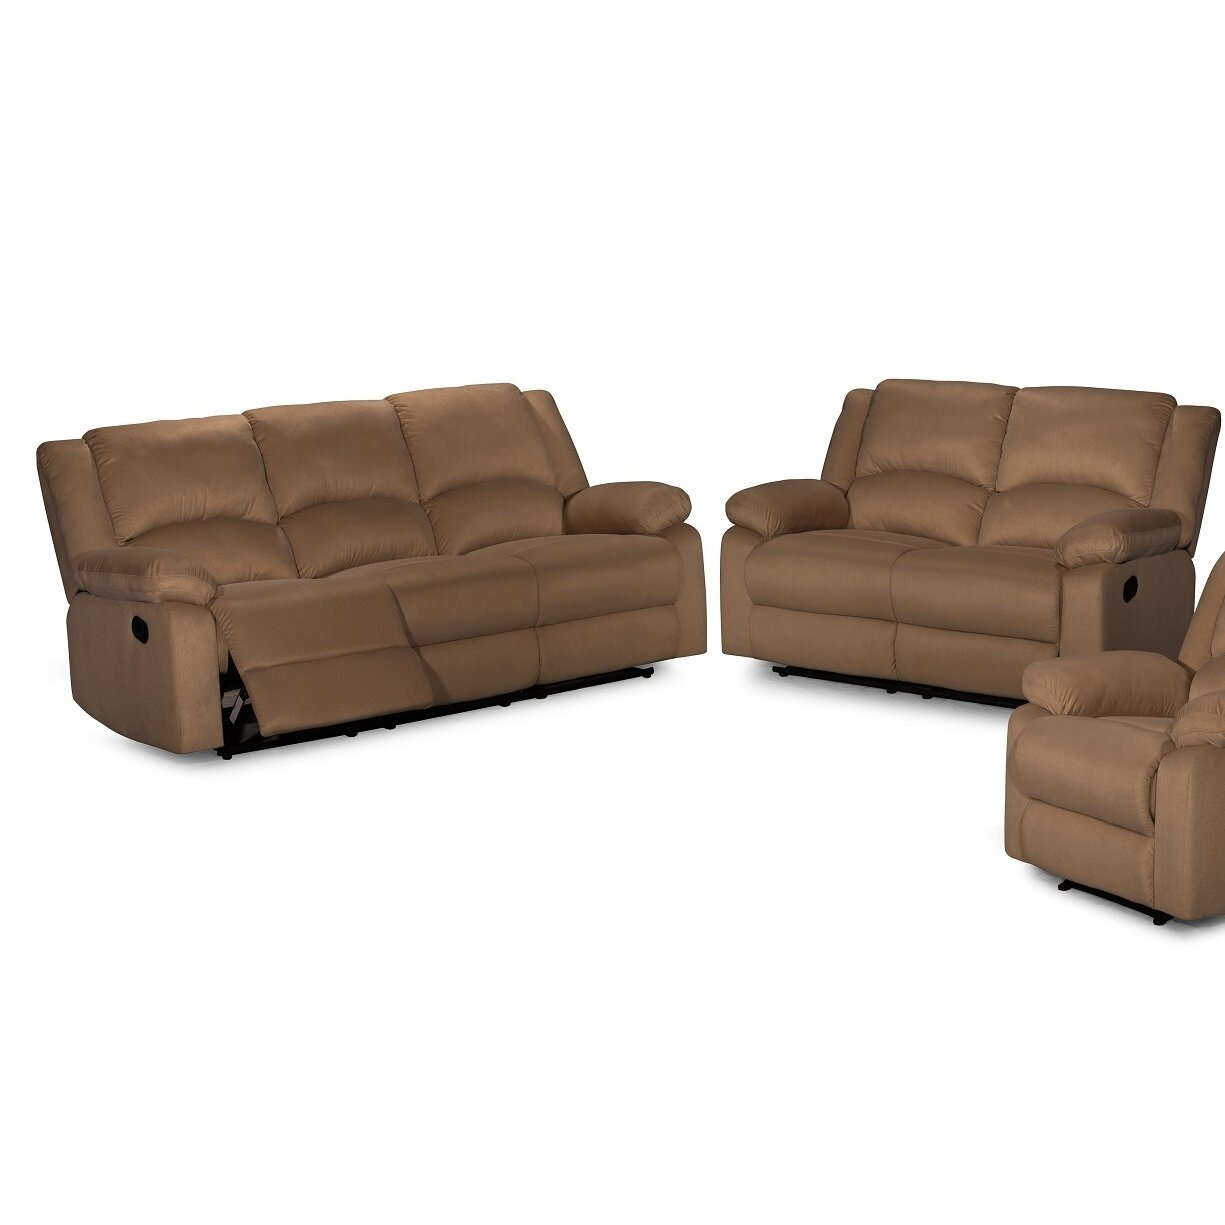 Container 2 piece recliner sofa set reviews for 2 piece furniture set